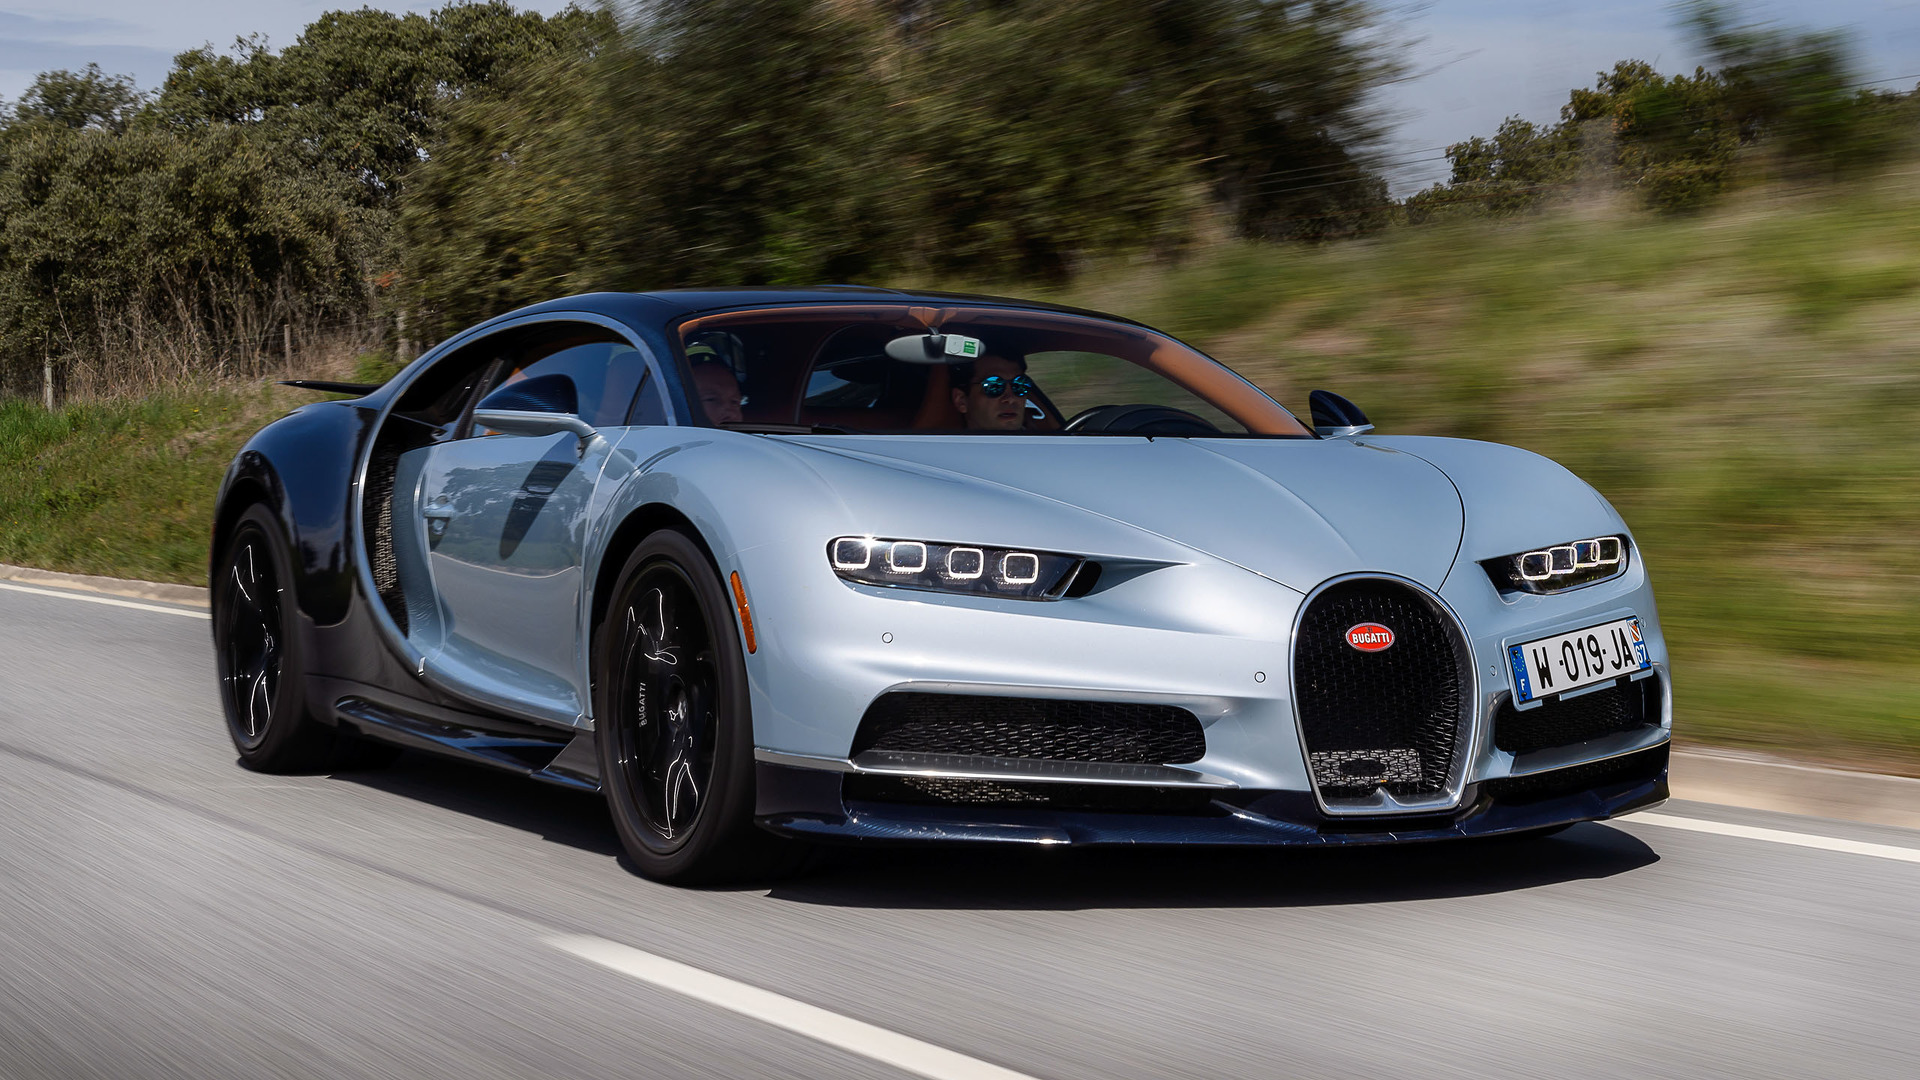 2018 Bugatti Chiron First Drive on classic cars for sale